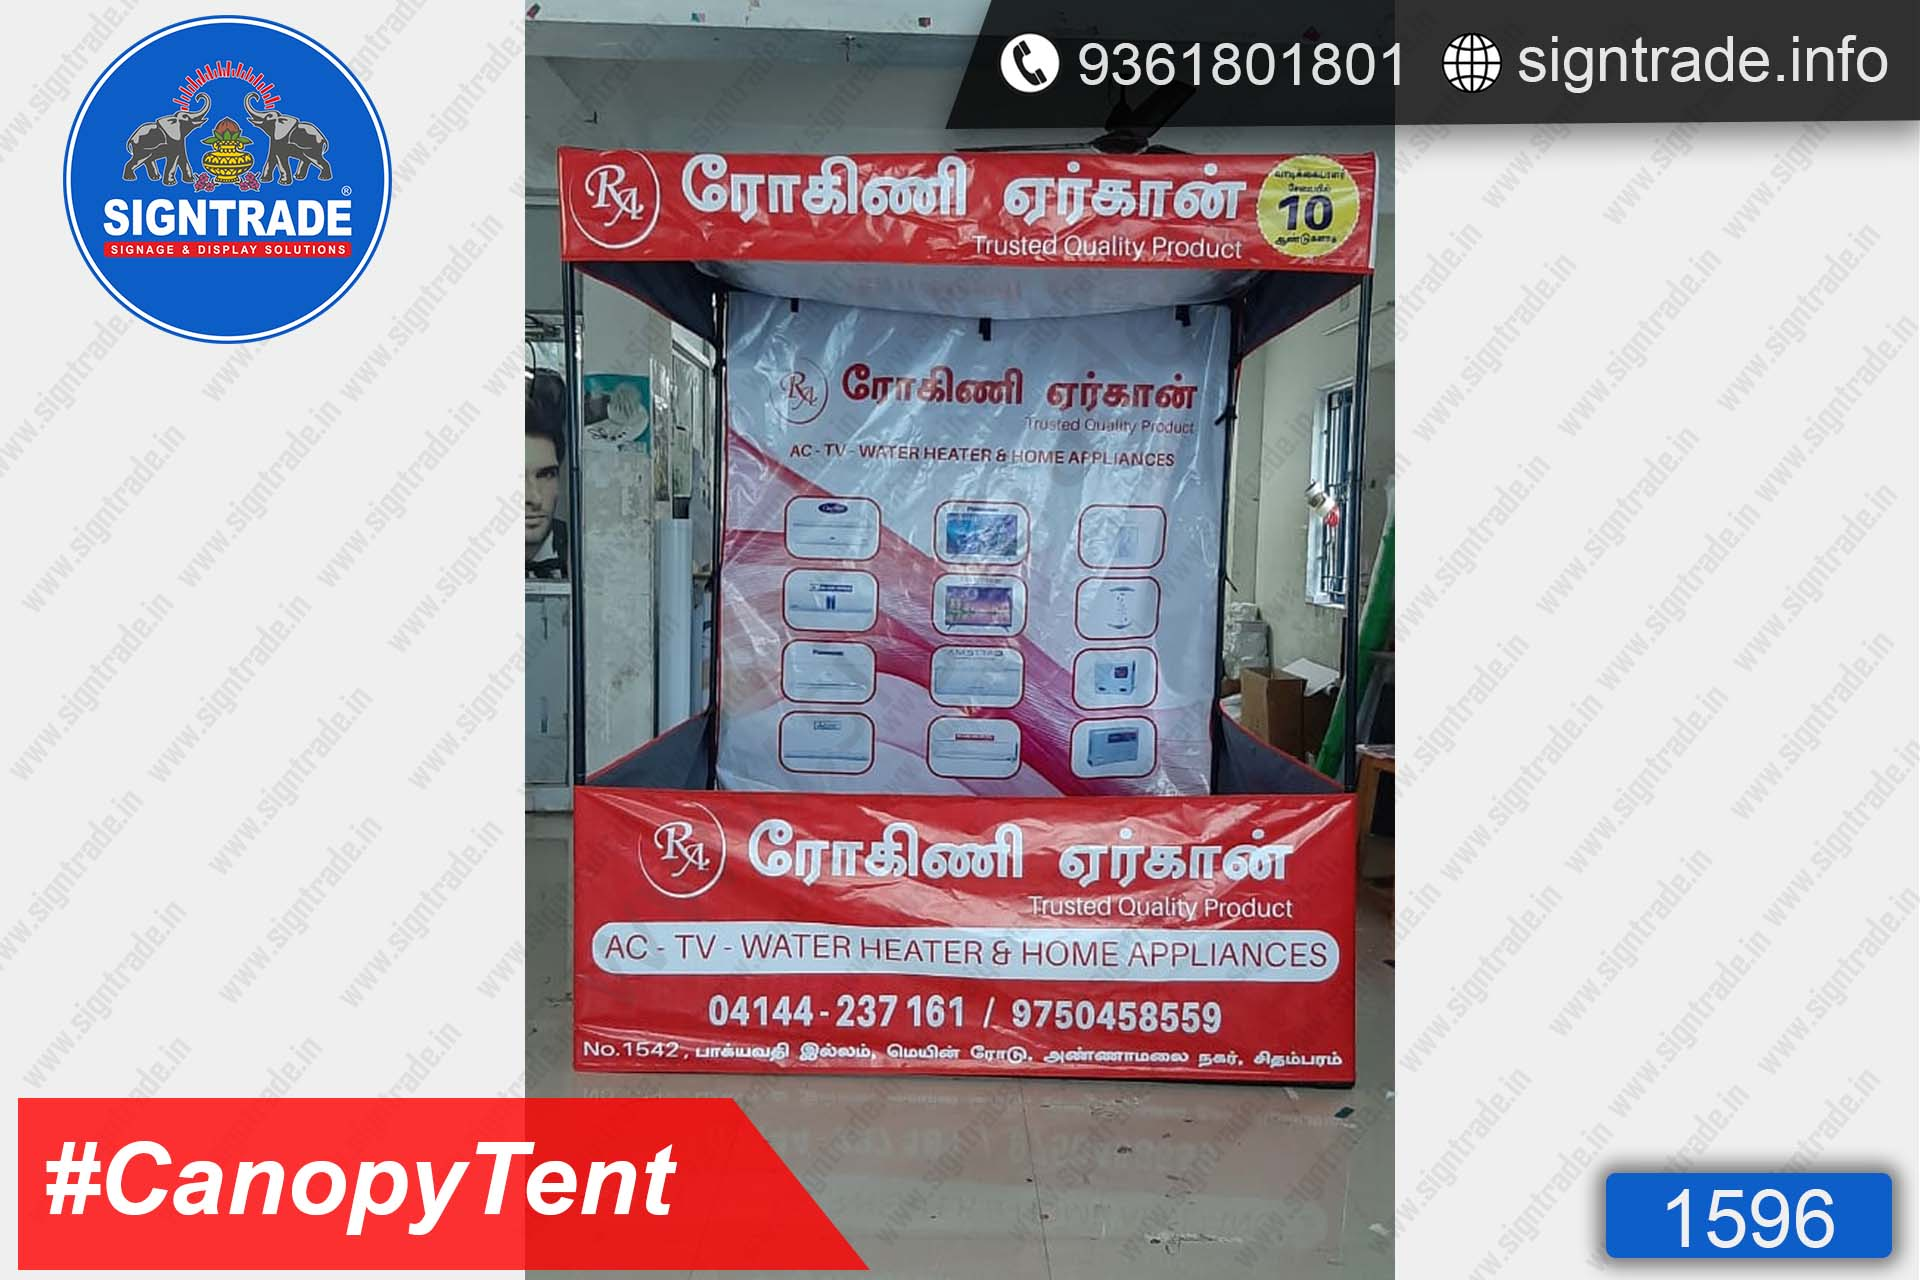 Rogini Aircon - SIGNTRADE - Canopy Tent Manufactures in Chennai